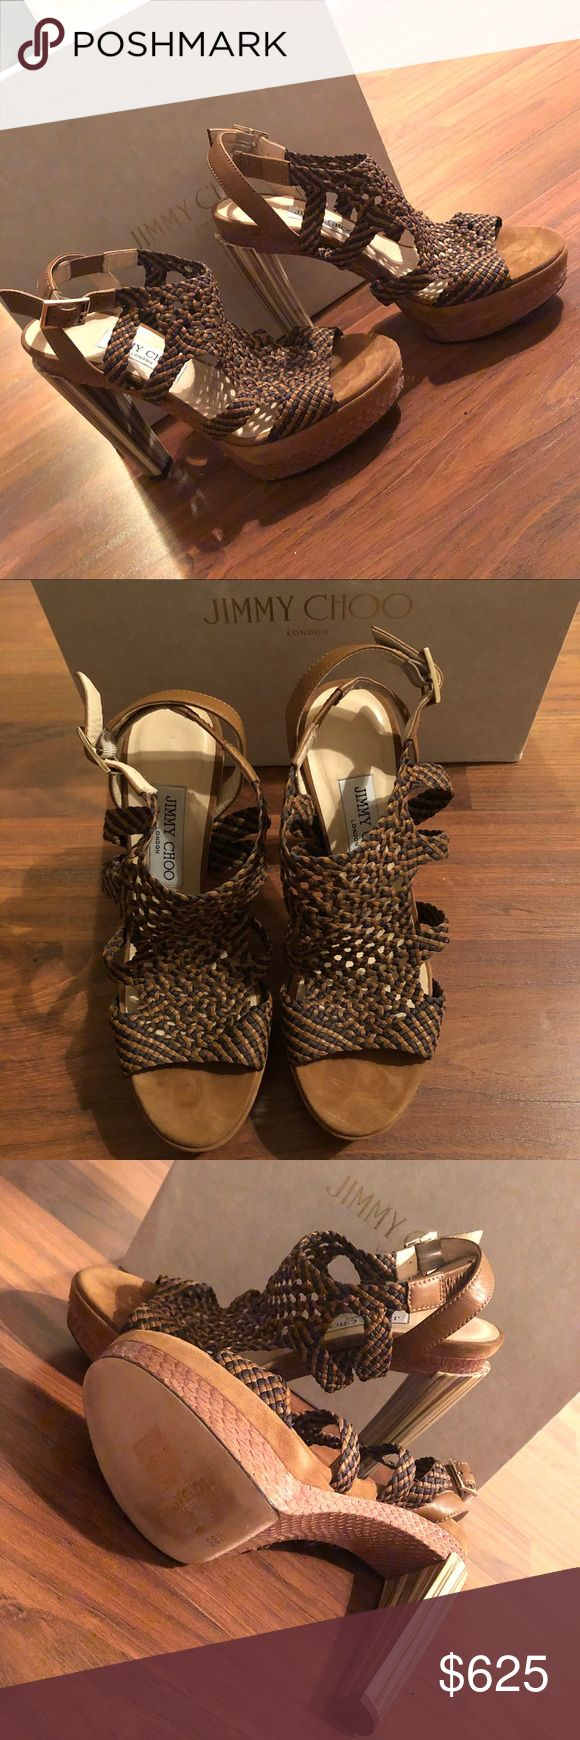 JIMMY CHOO 130MM BRAIDED PLATFORM SANDAL Never worn, just walked around my house in them otherwise, just sitting in my closet. Proof of purchase at Neiman Marcus Last Call, very comfortable shoe. Not looking to trade, accepting offers, no low balling. :) 100% authentic. Jimmy Choo Shoes